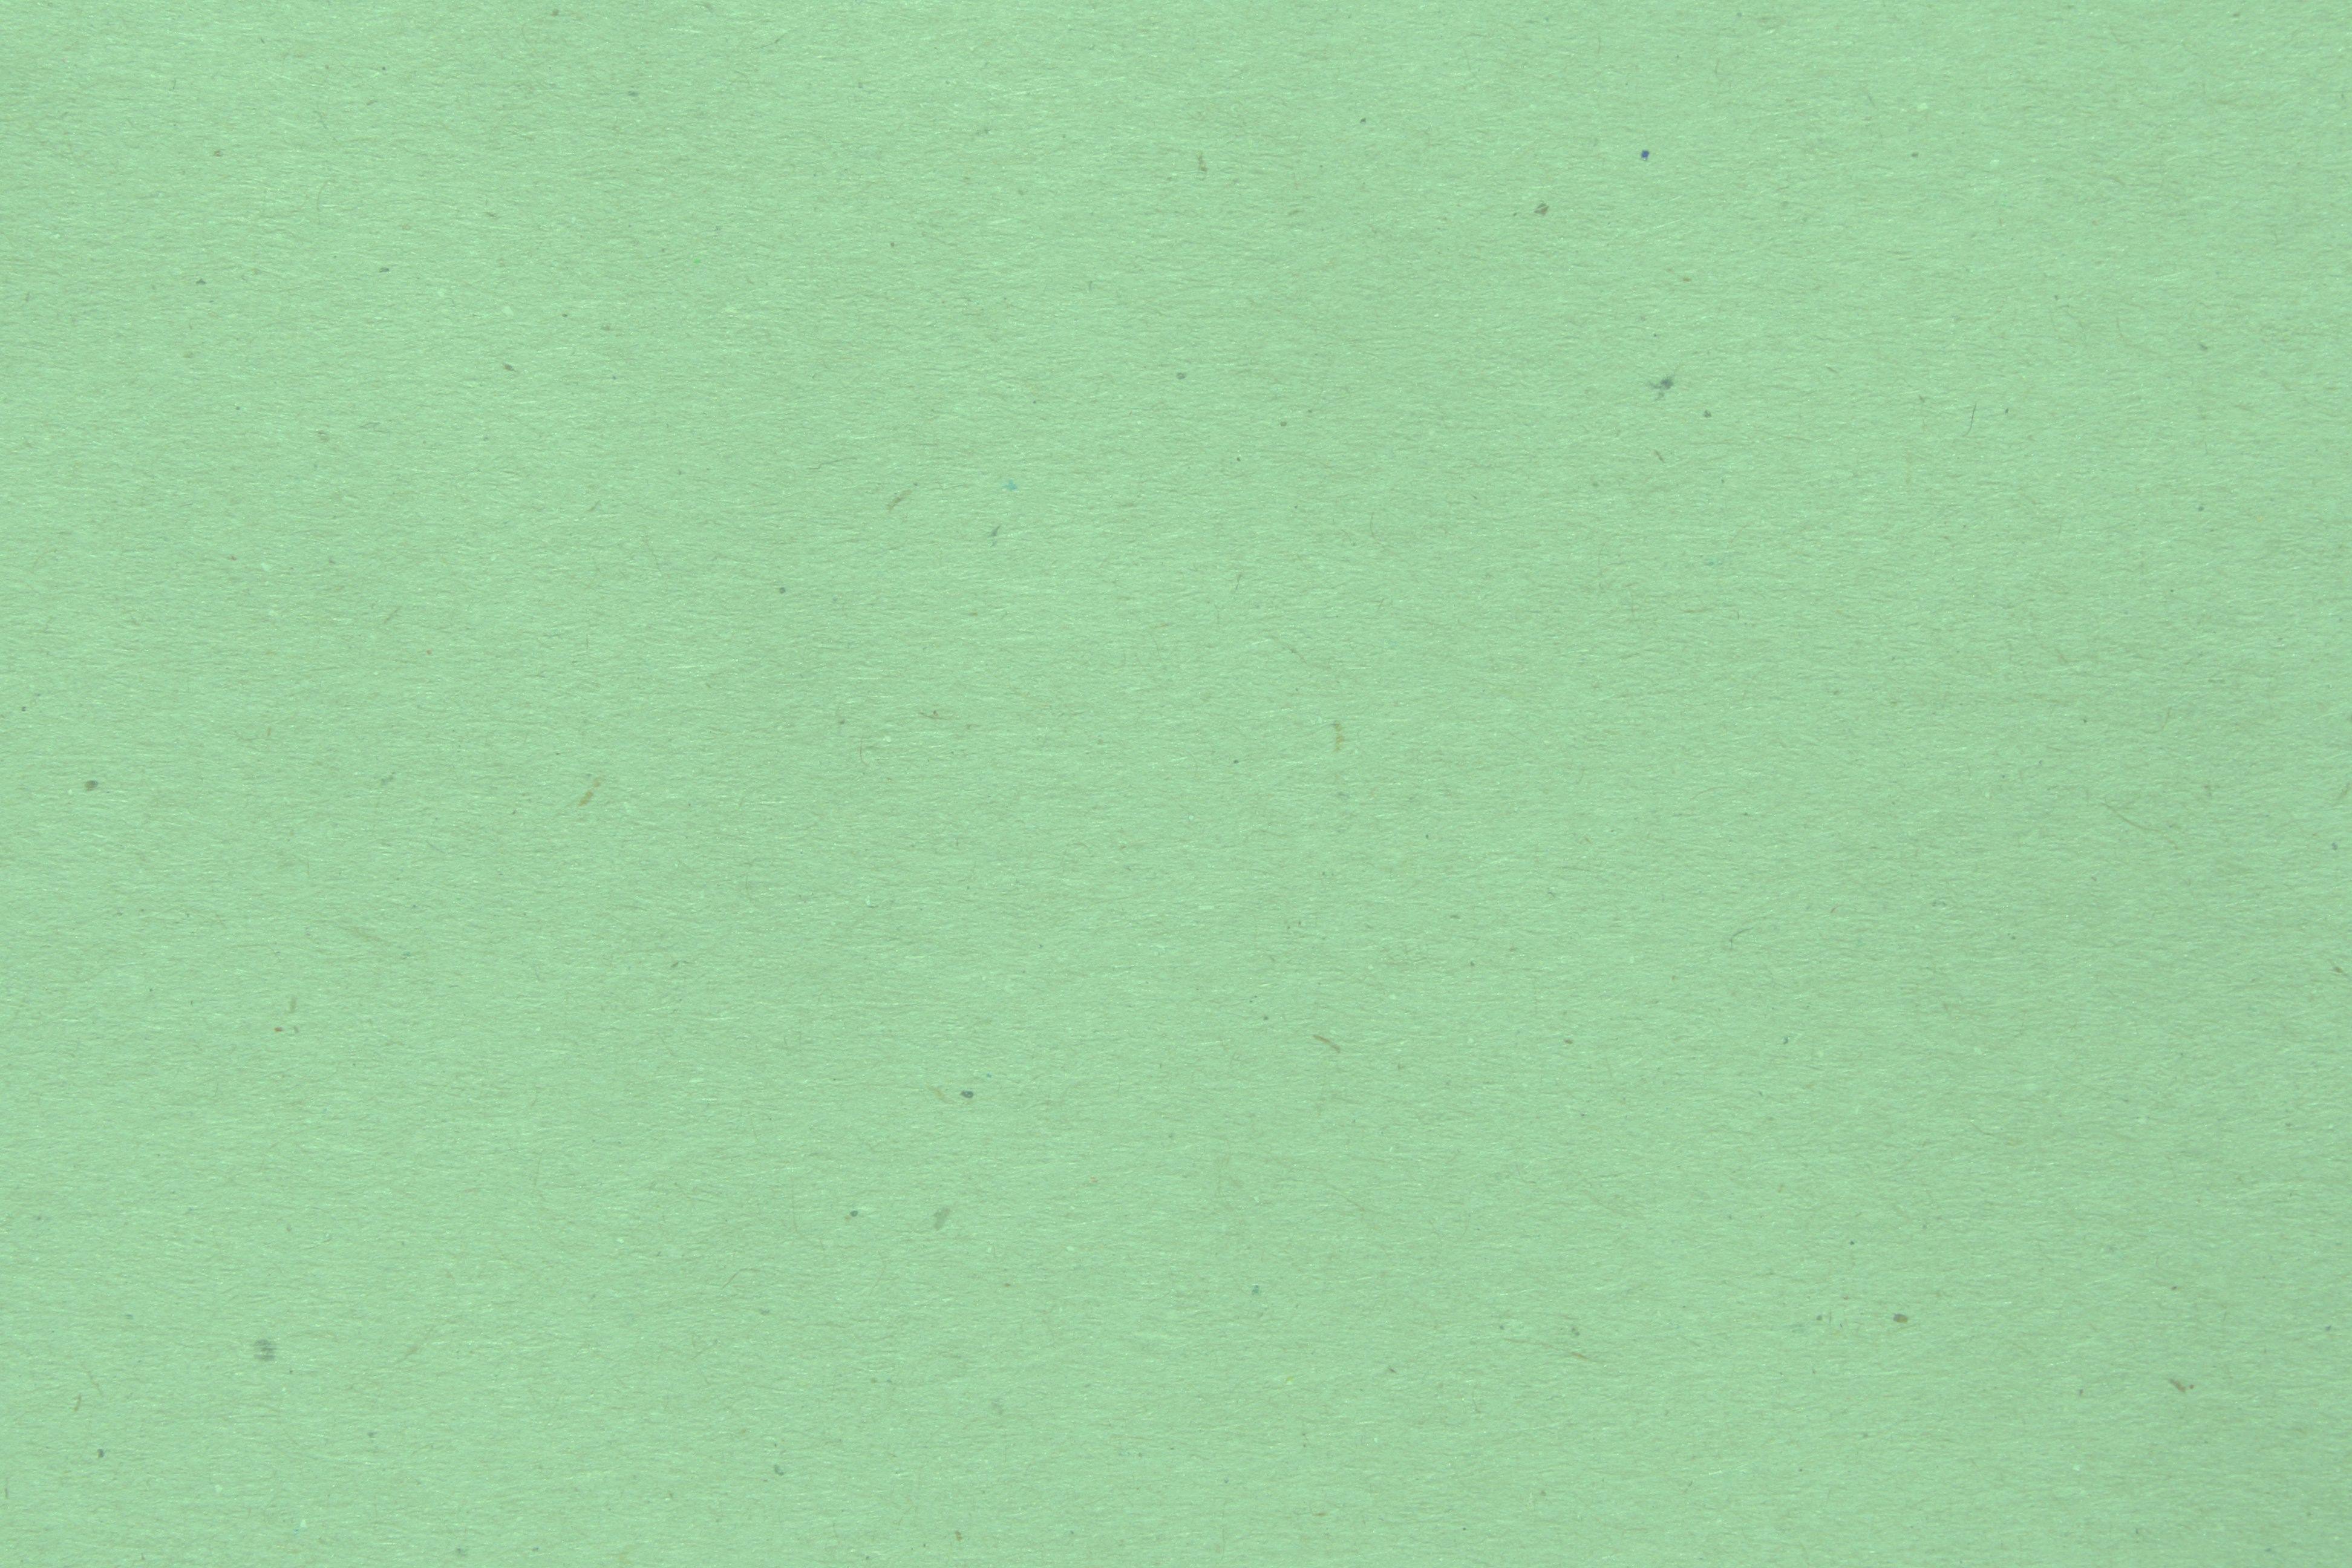 Mint wallpapers wallpapersafari Very light mint green paint